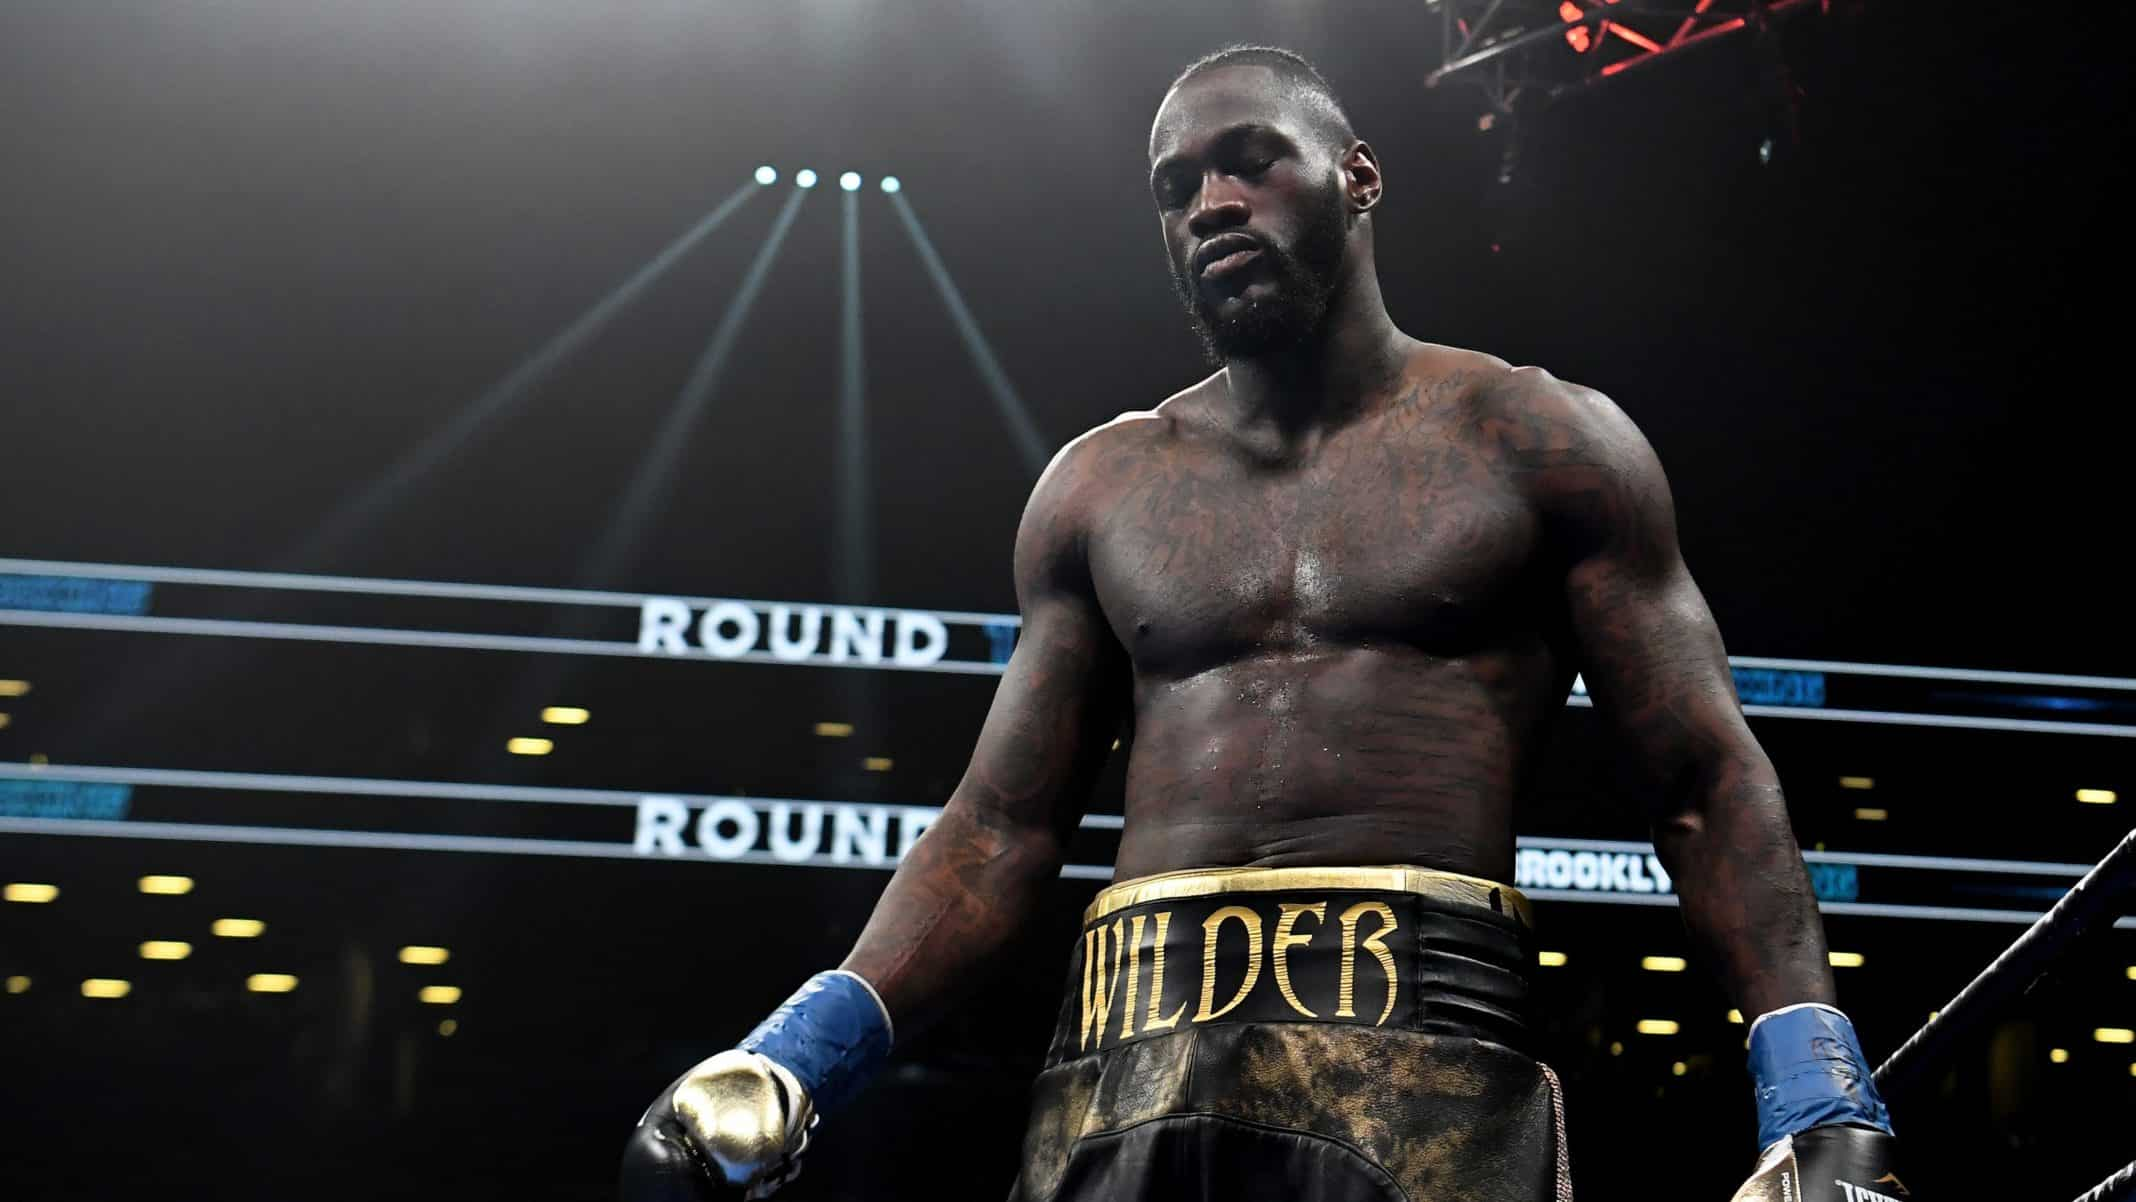 deontay-wilder-biography-facts-childhood-net-worth-life-scaled.jpeg (79.64 Kb)